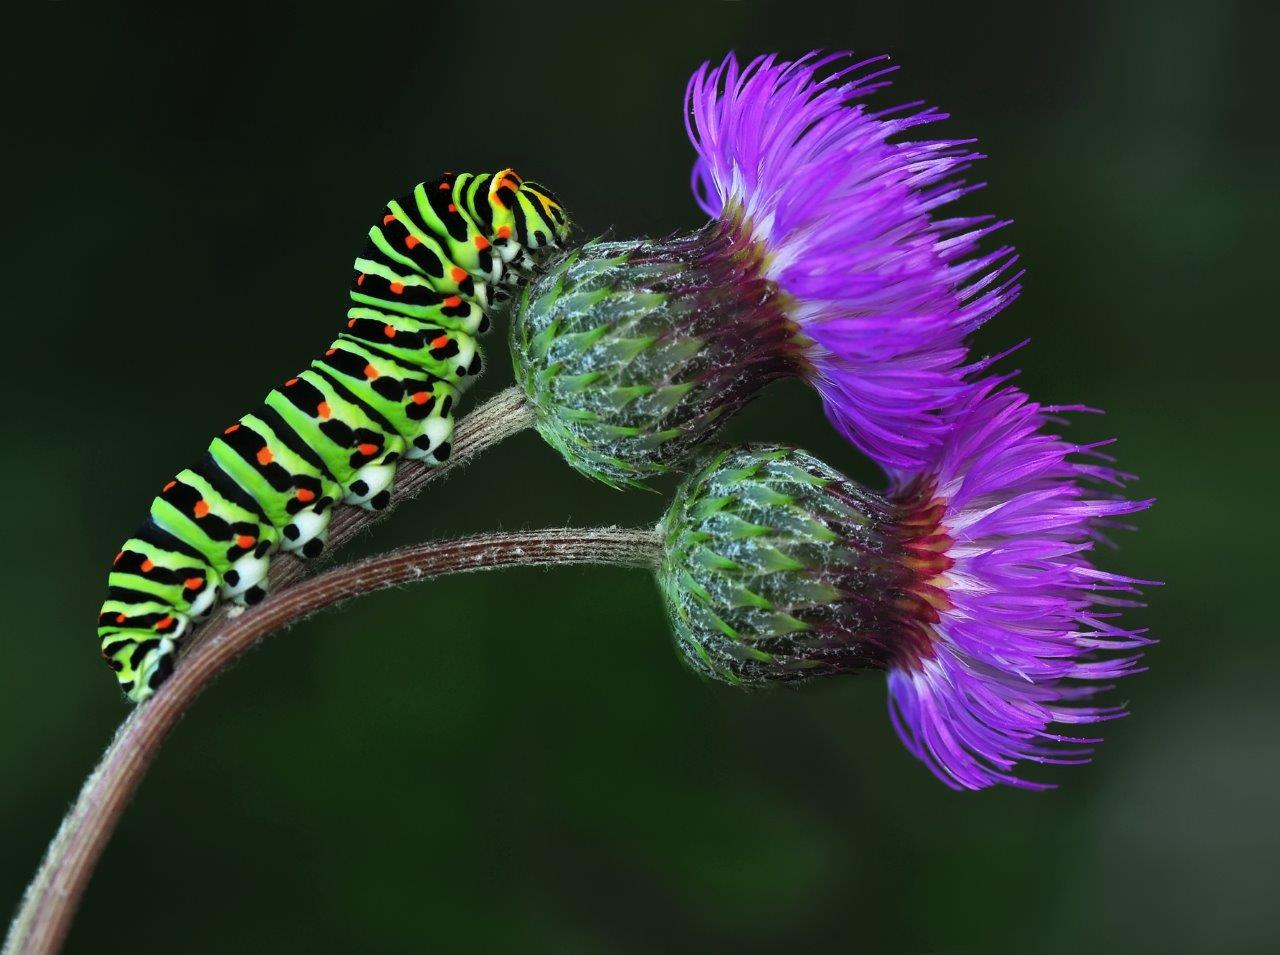 Close-up of a green caterpillar on purple flowers - using your camera's macro scene mode setting